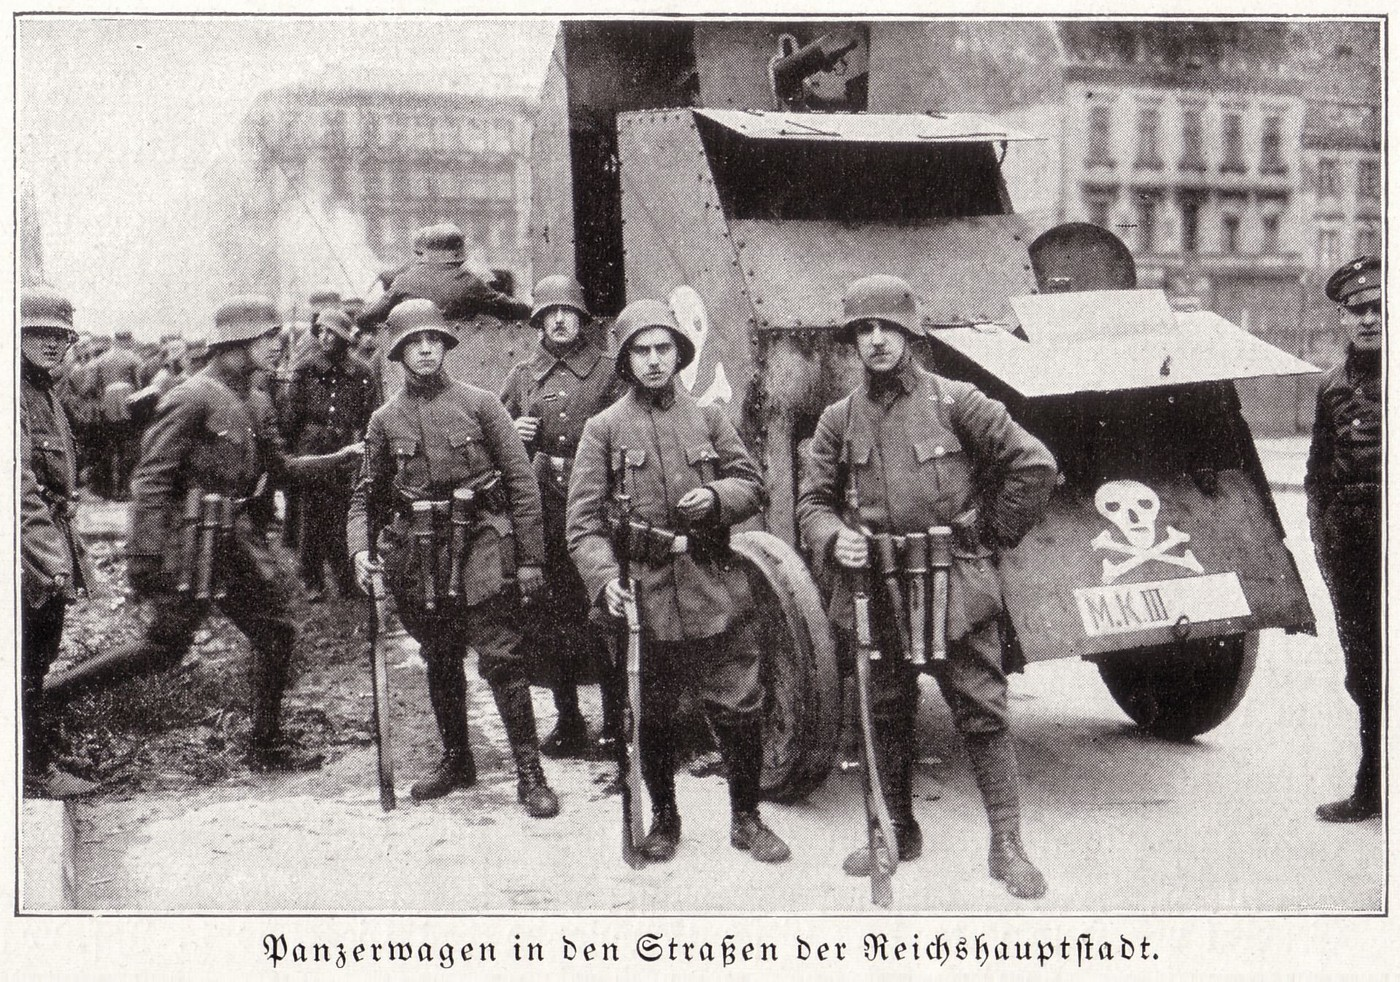 Pictured: German Freikorps, the reactionary armed wing of the ruling classes during the Spartacist uprising.